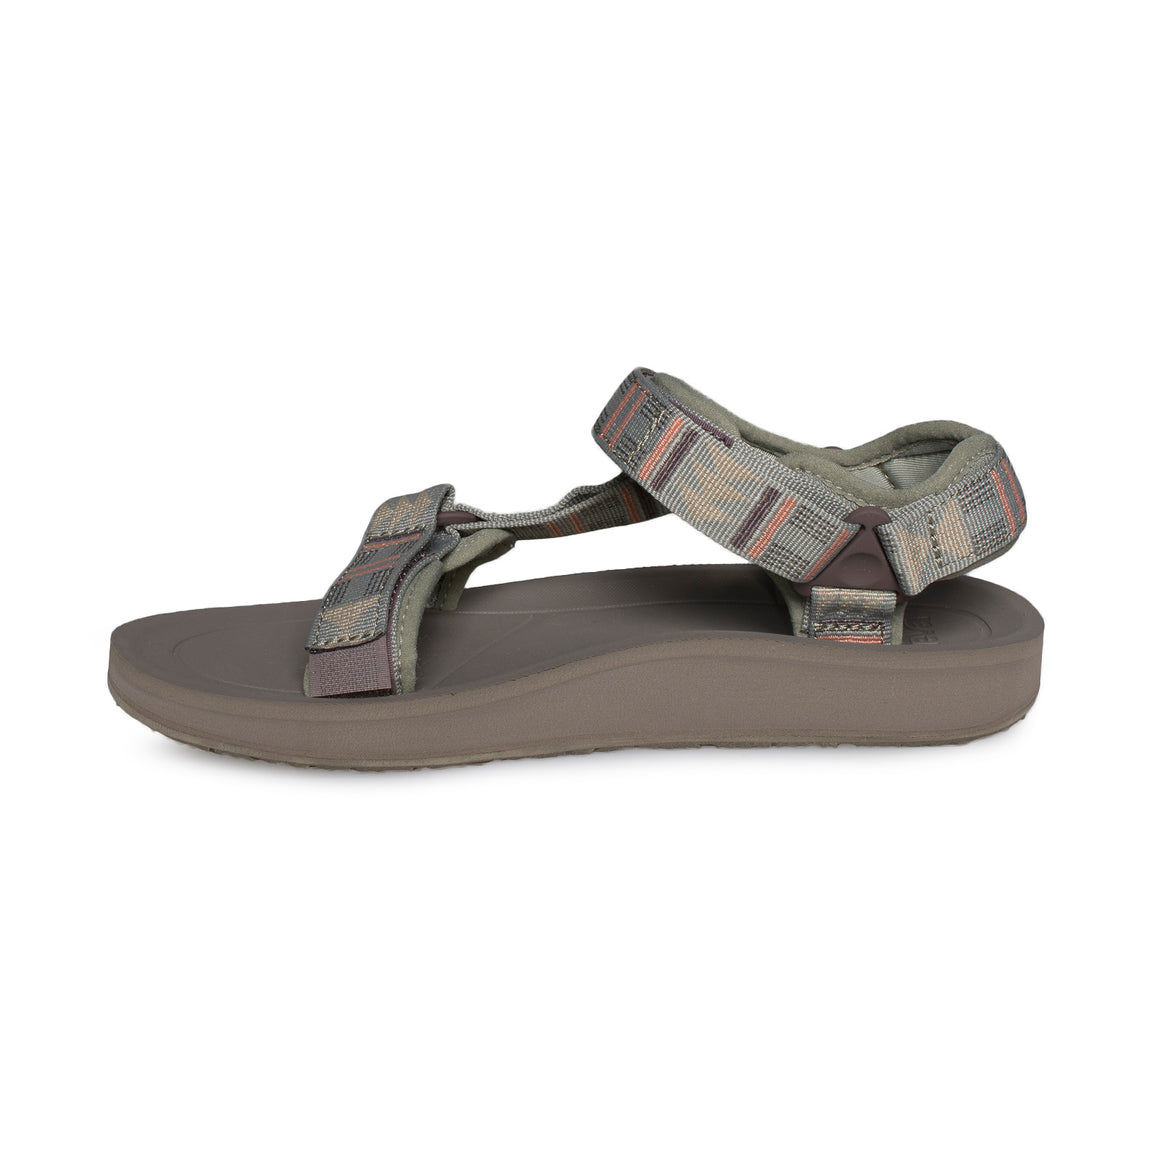 TEVA Original Universal Premier Beach Break Desert Sage Sandals - Women's